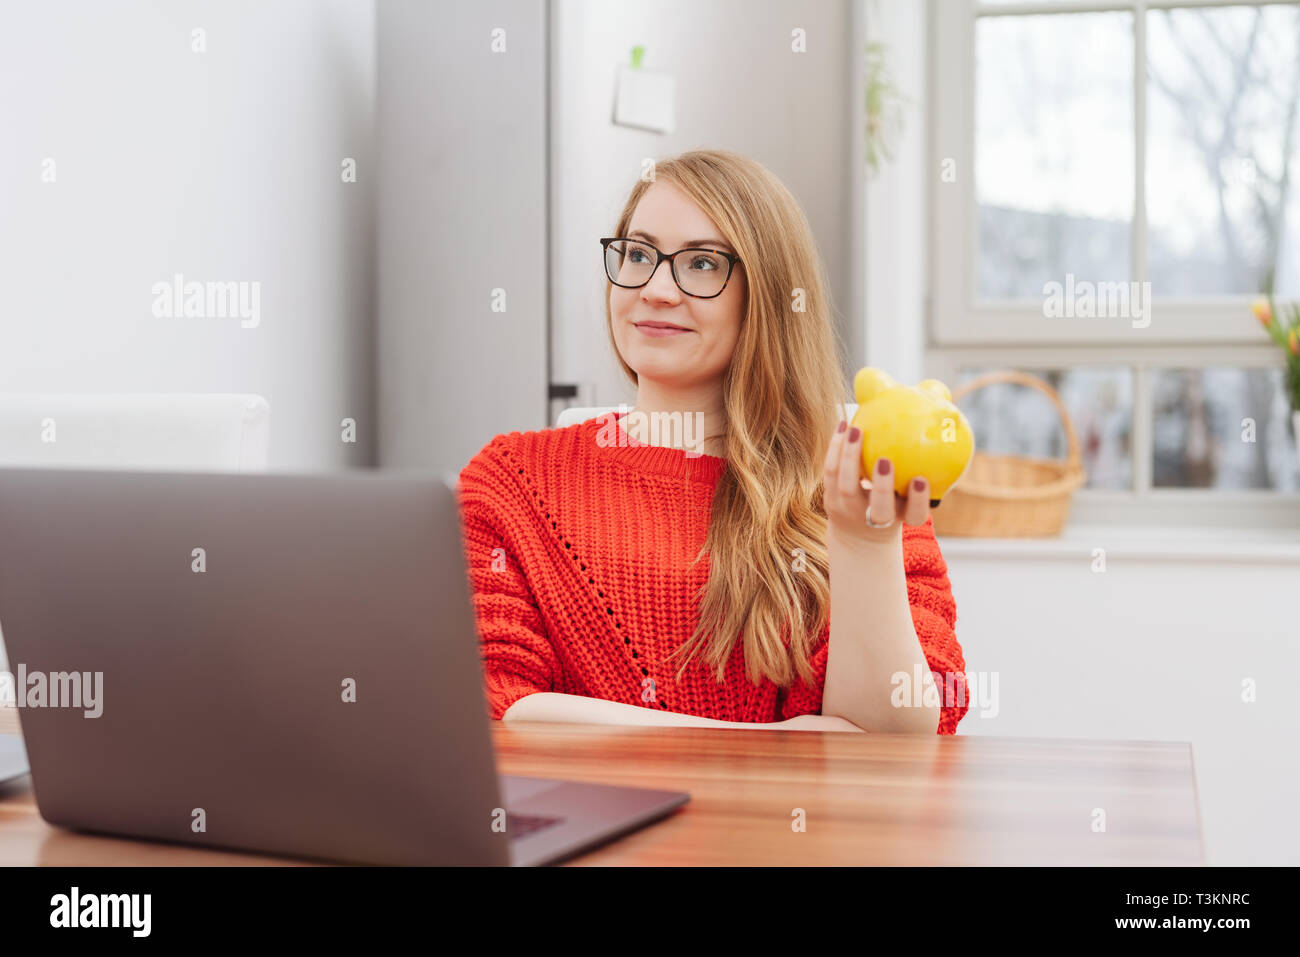 Thoughtful young woman holding a yellow piggy bank as she relaxes at a table at home looking up with a smile as she imagines all the things she can do - Stock Image